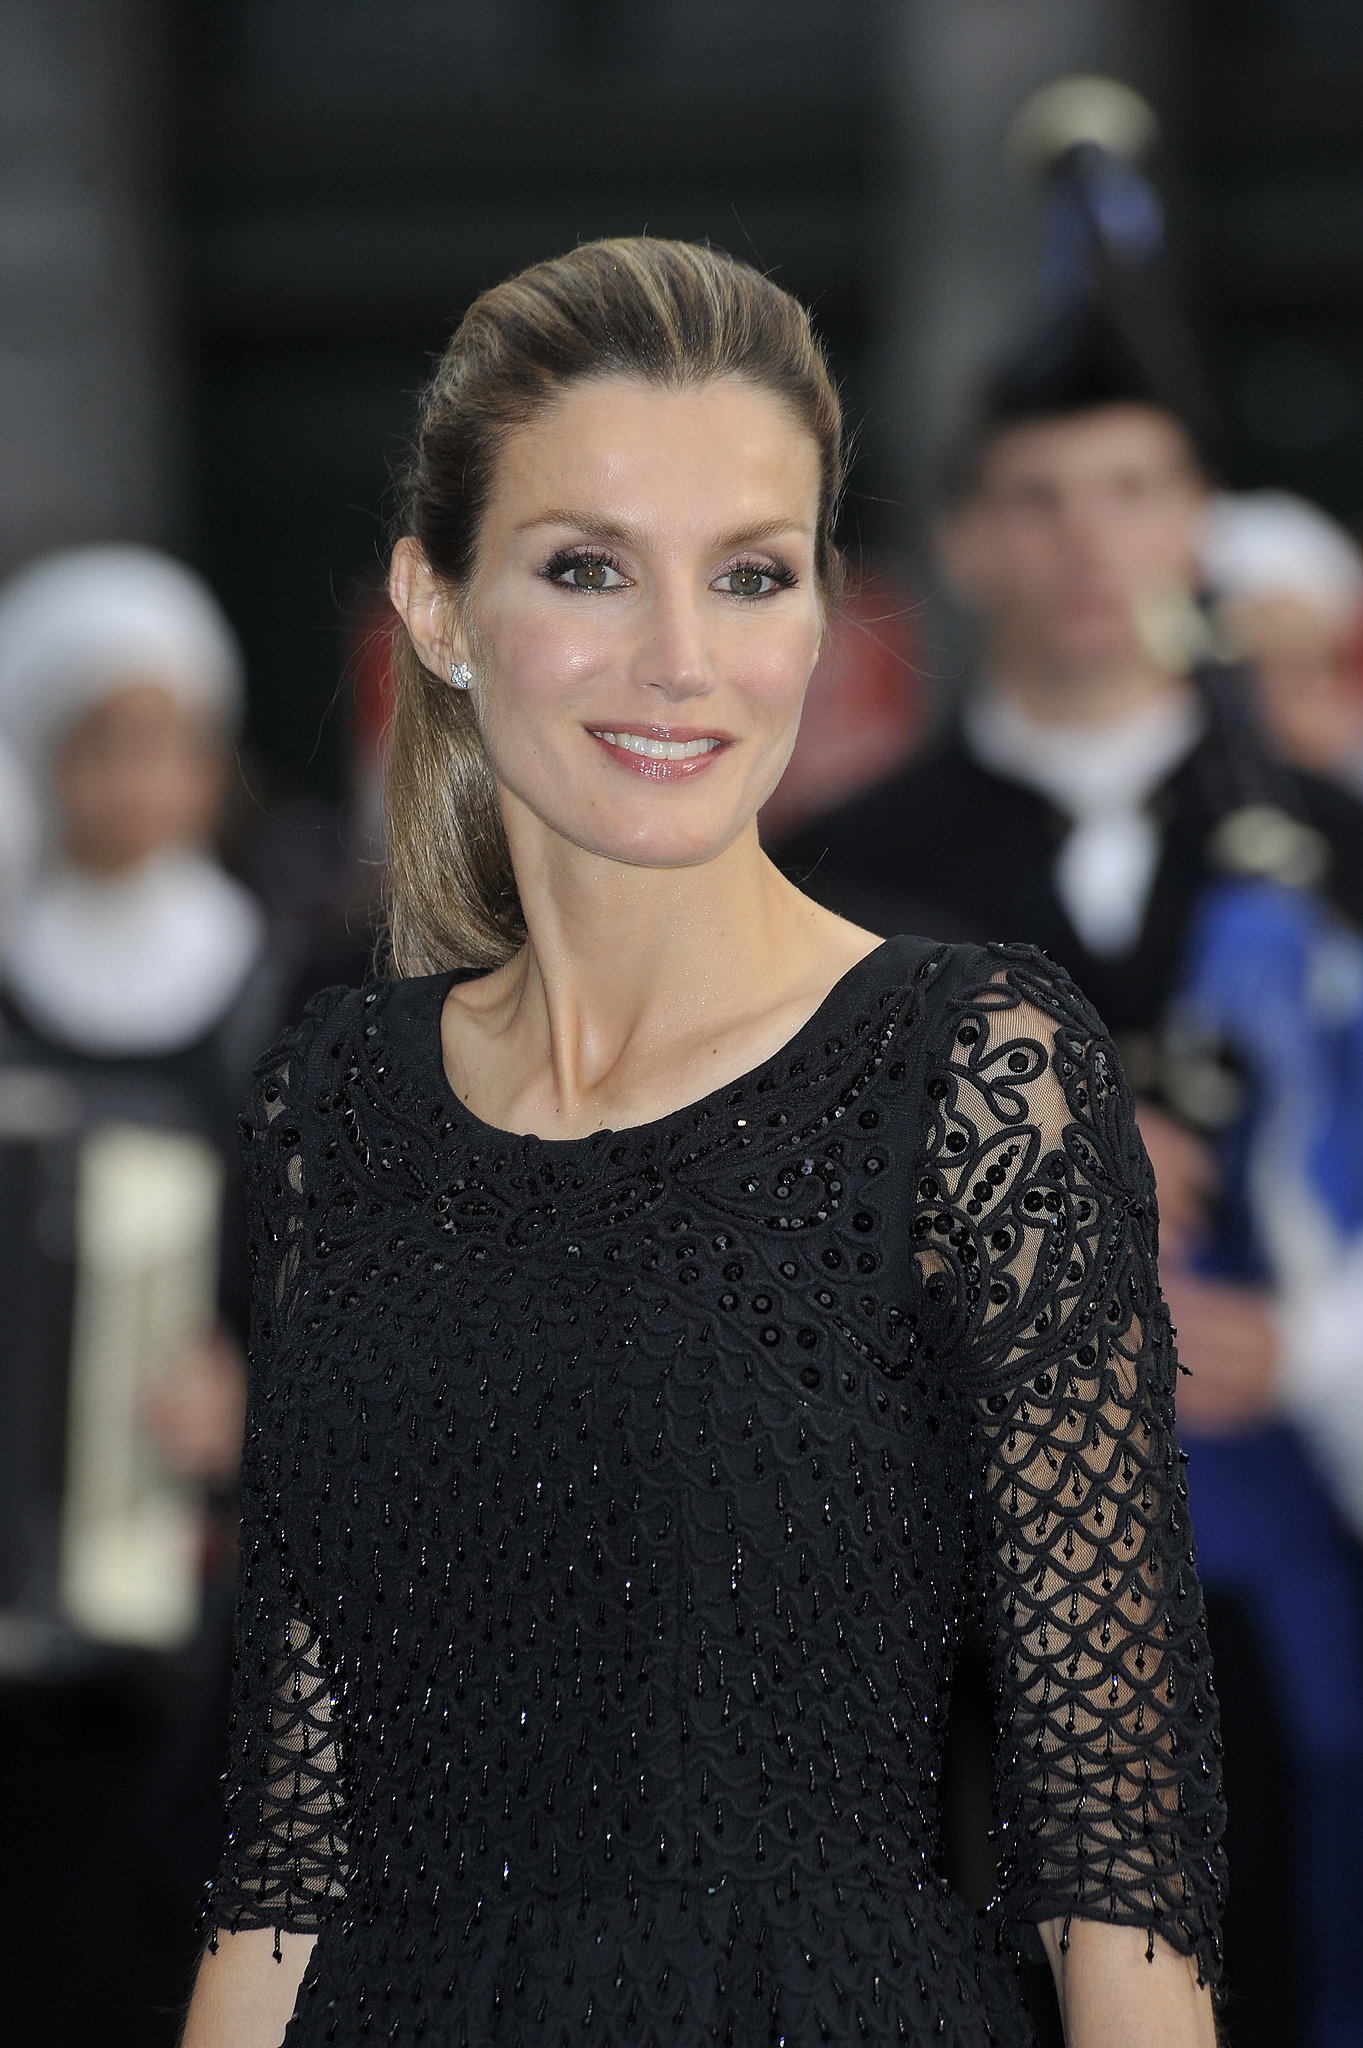 Princess Letizia went glam for an event at the Campoamor Theater in October 2010.